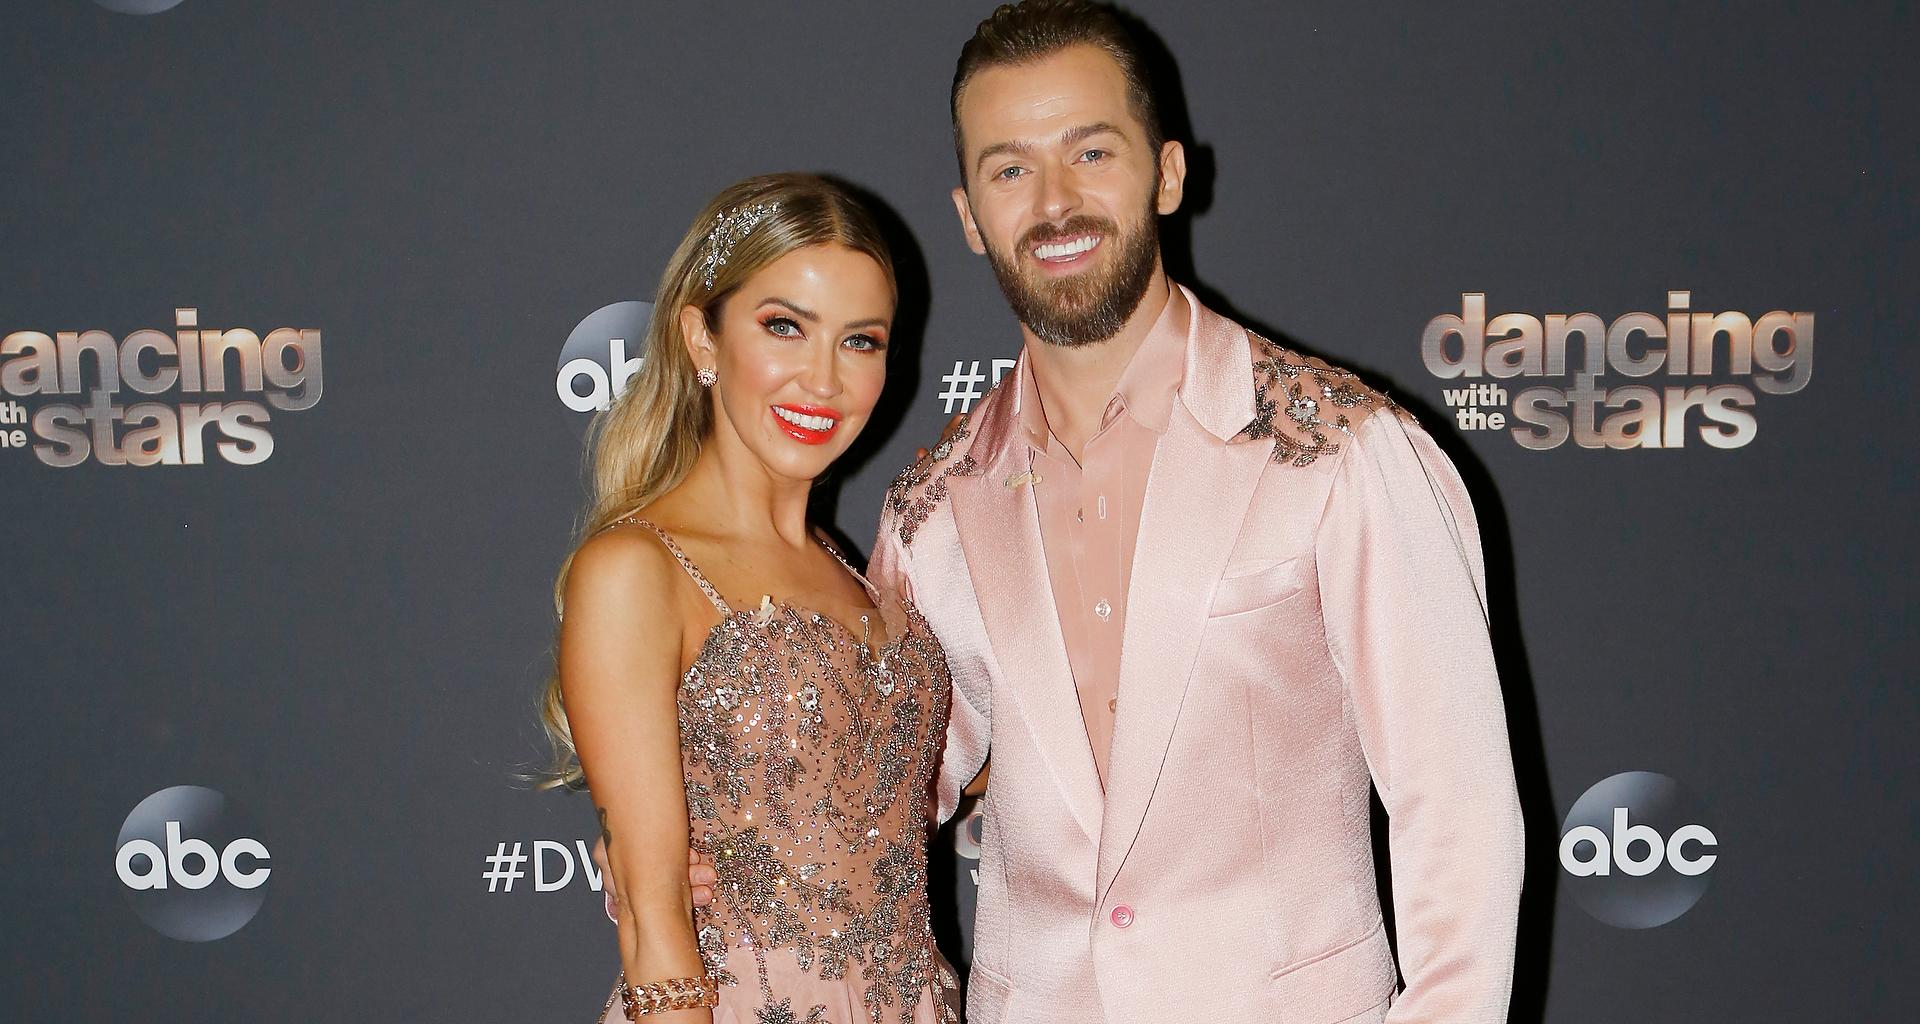 Artem Chigvintsev Calls For The Dancing With The Stars Judges To Be On The Same Page